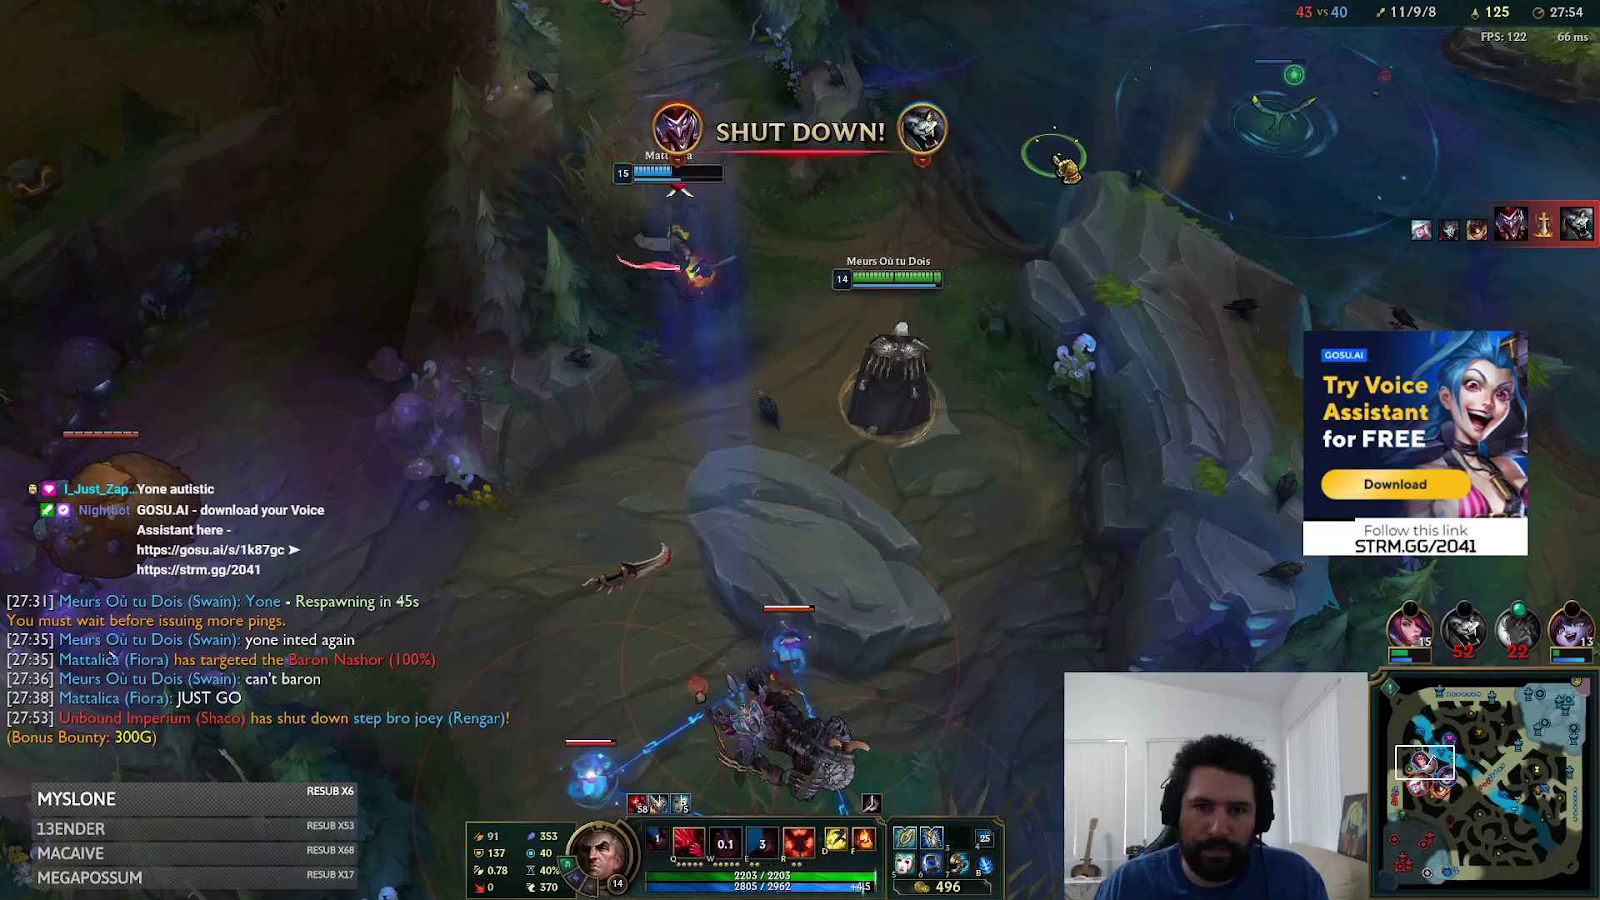 non-intrusive ad banner during live streaming